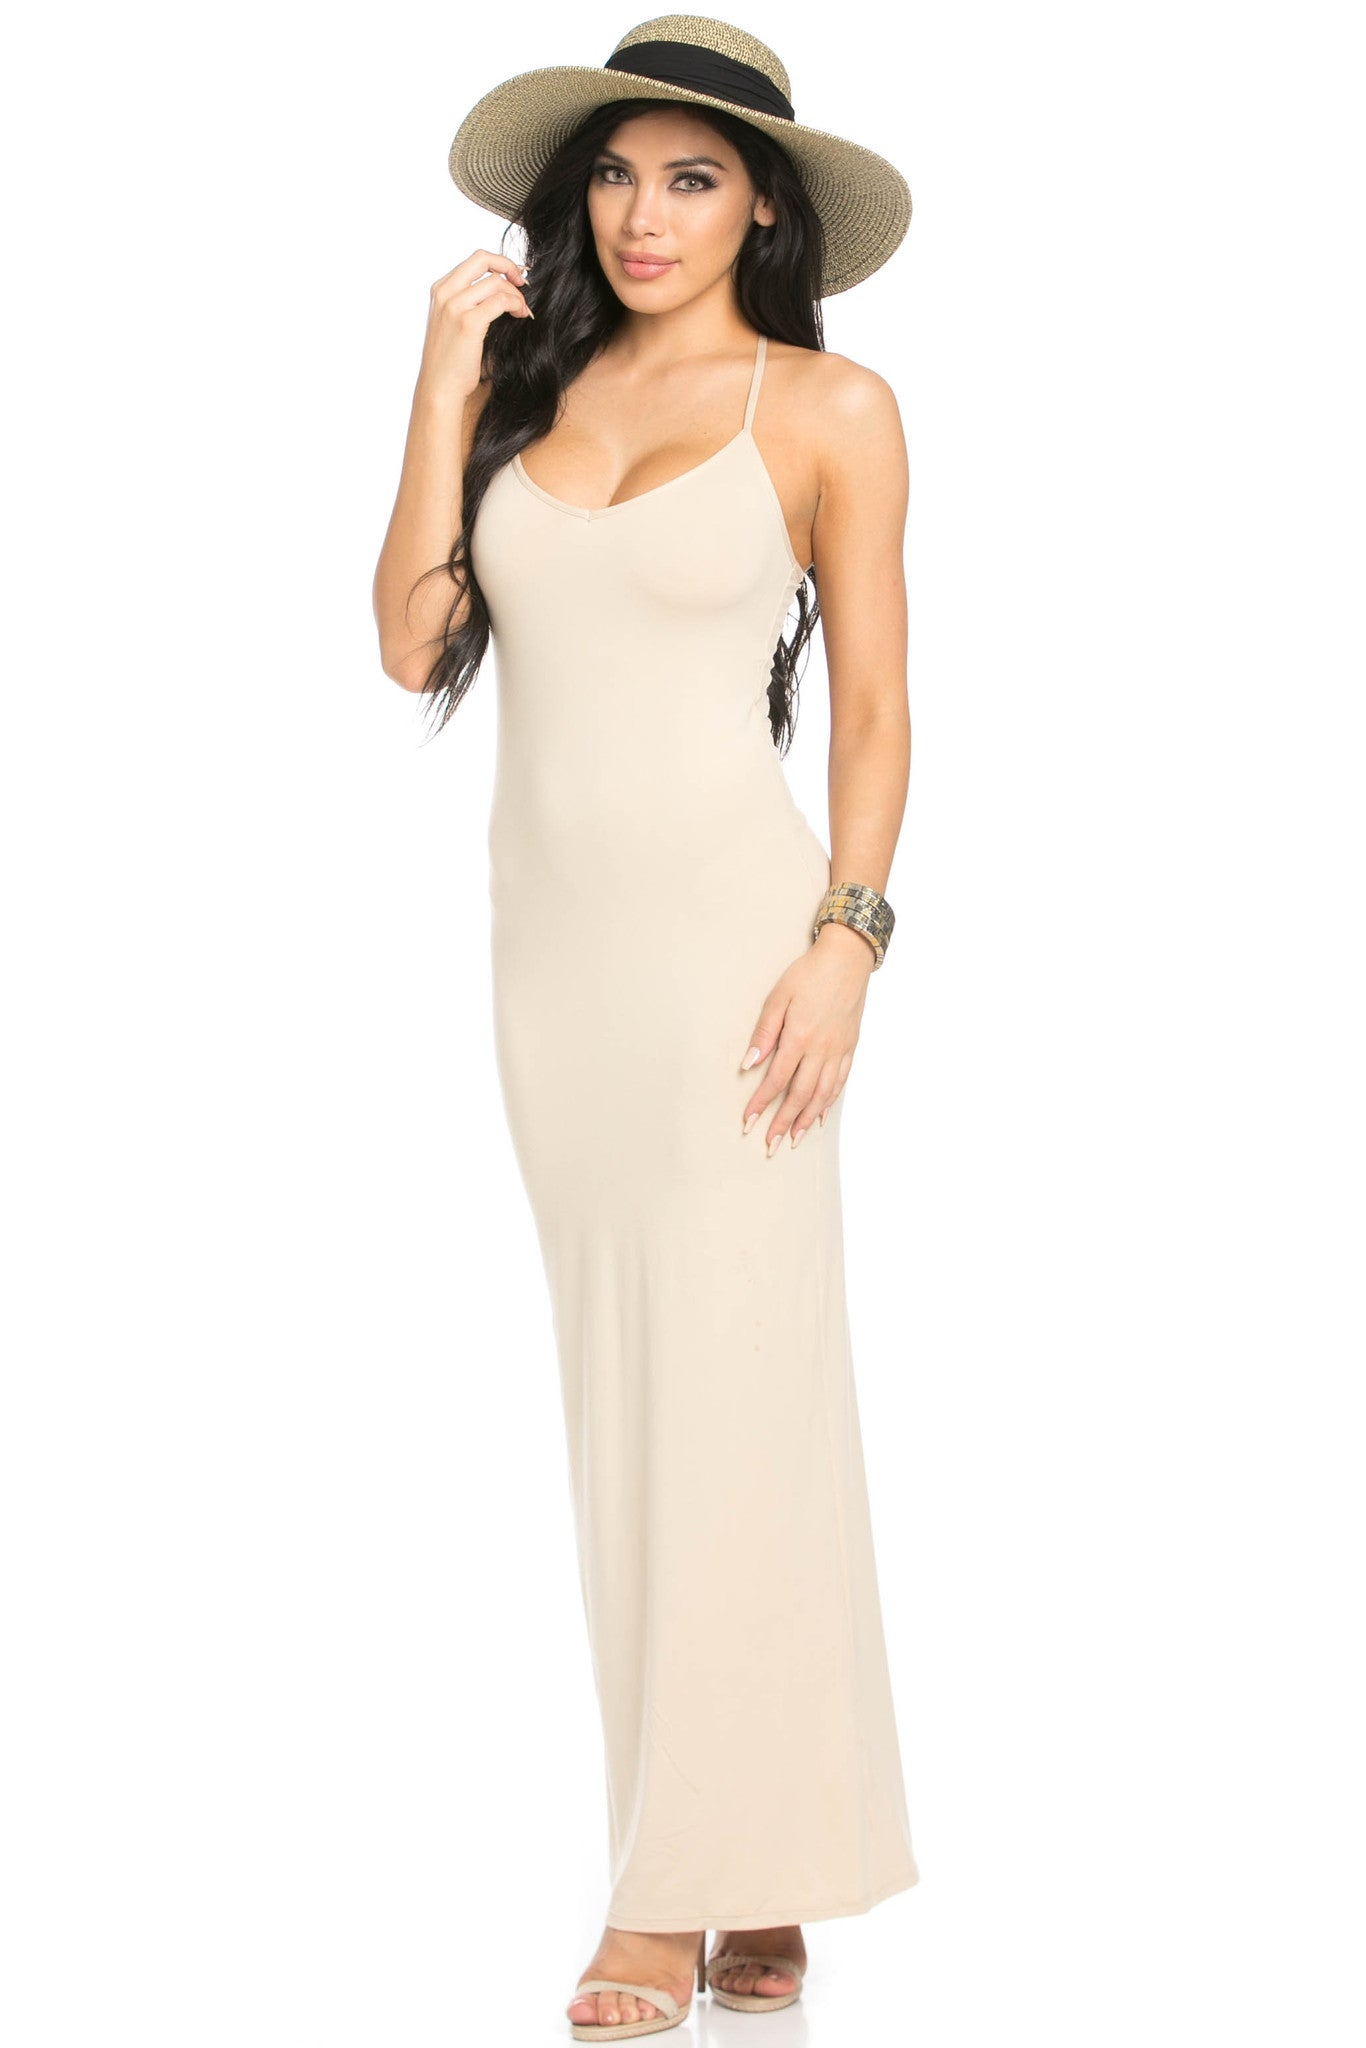 Micro Suede Khaki Maxi Dress - Dresses - My Yuccie - 1